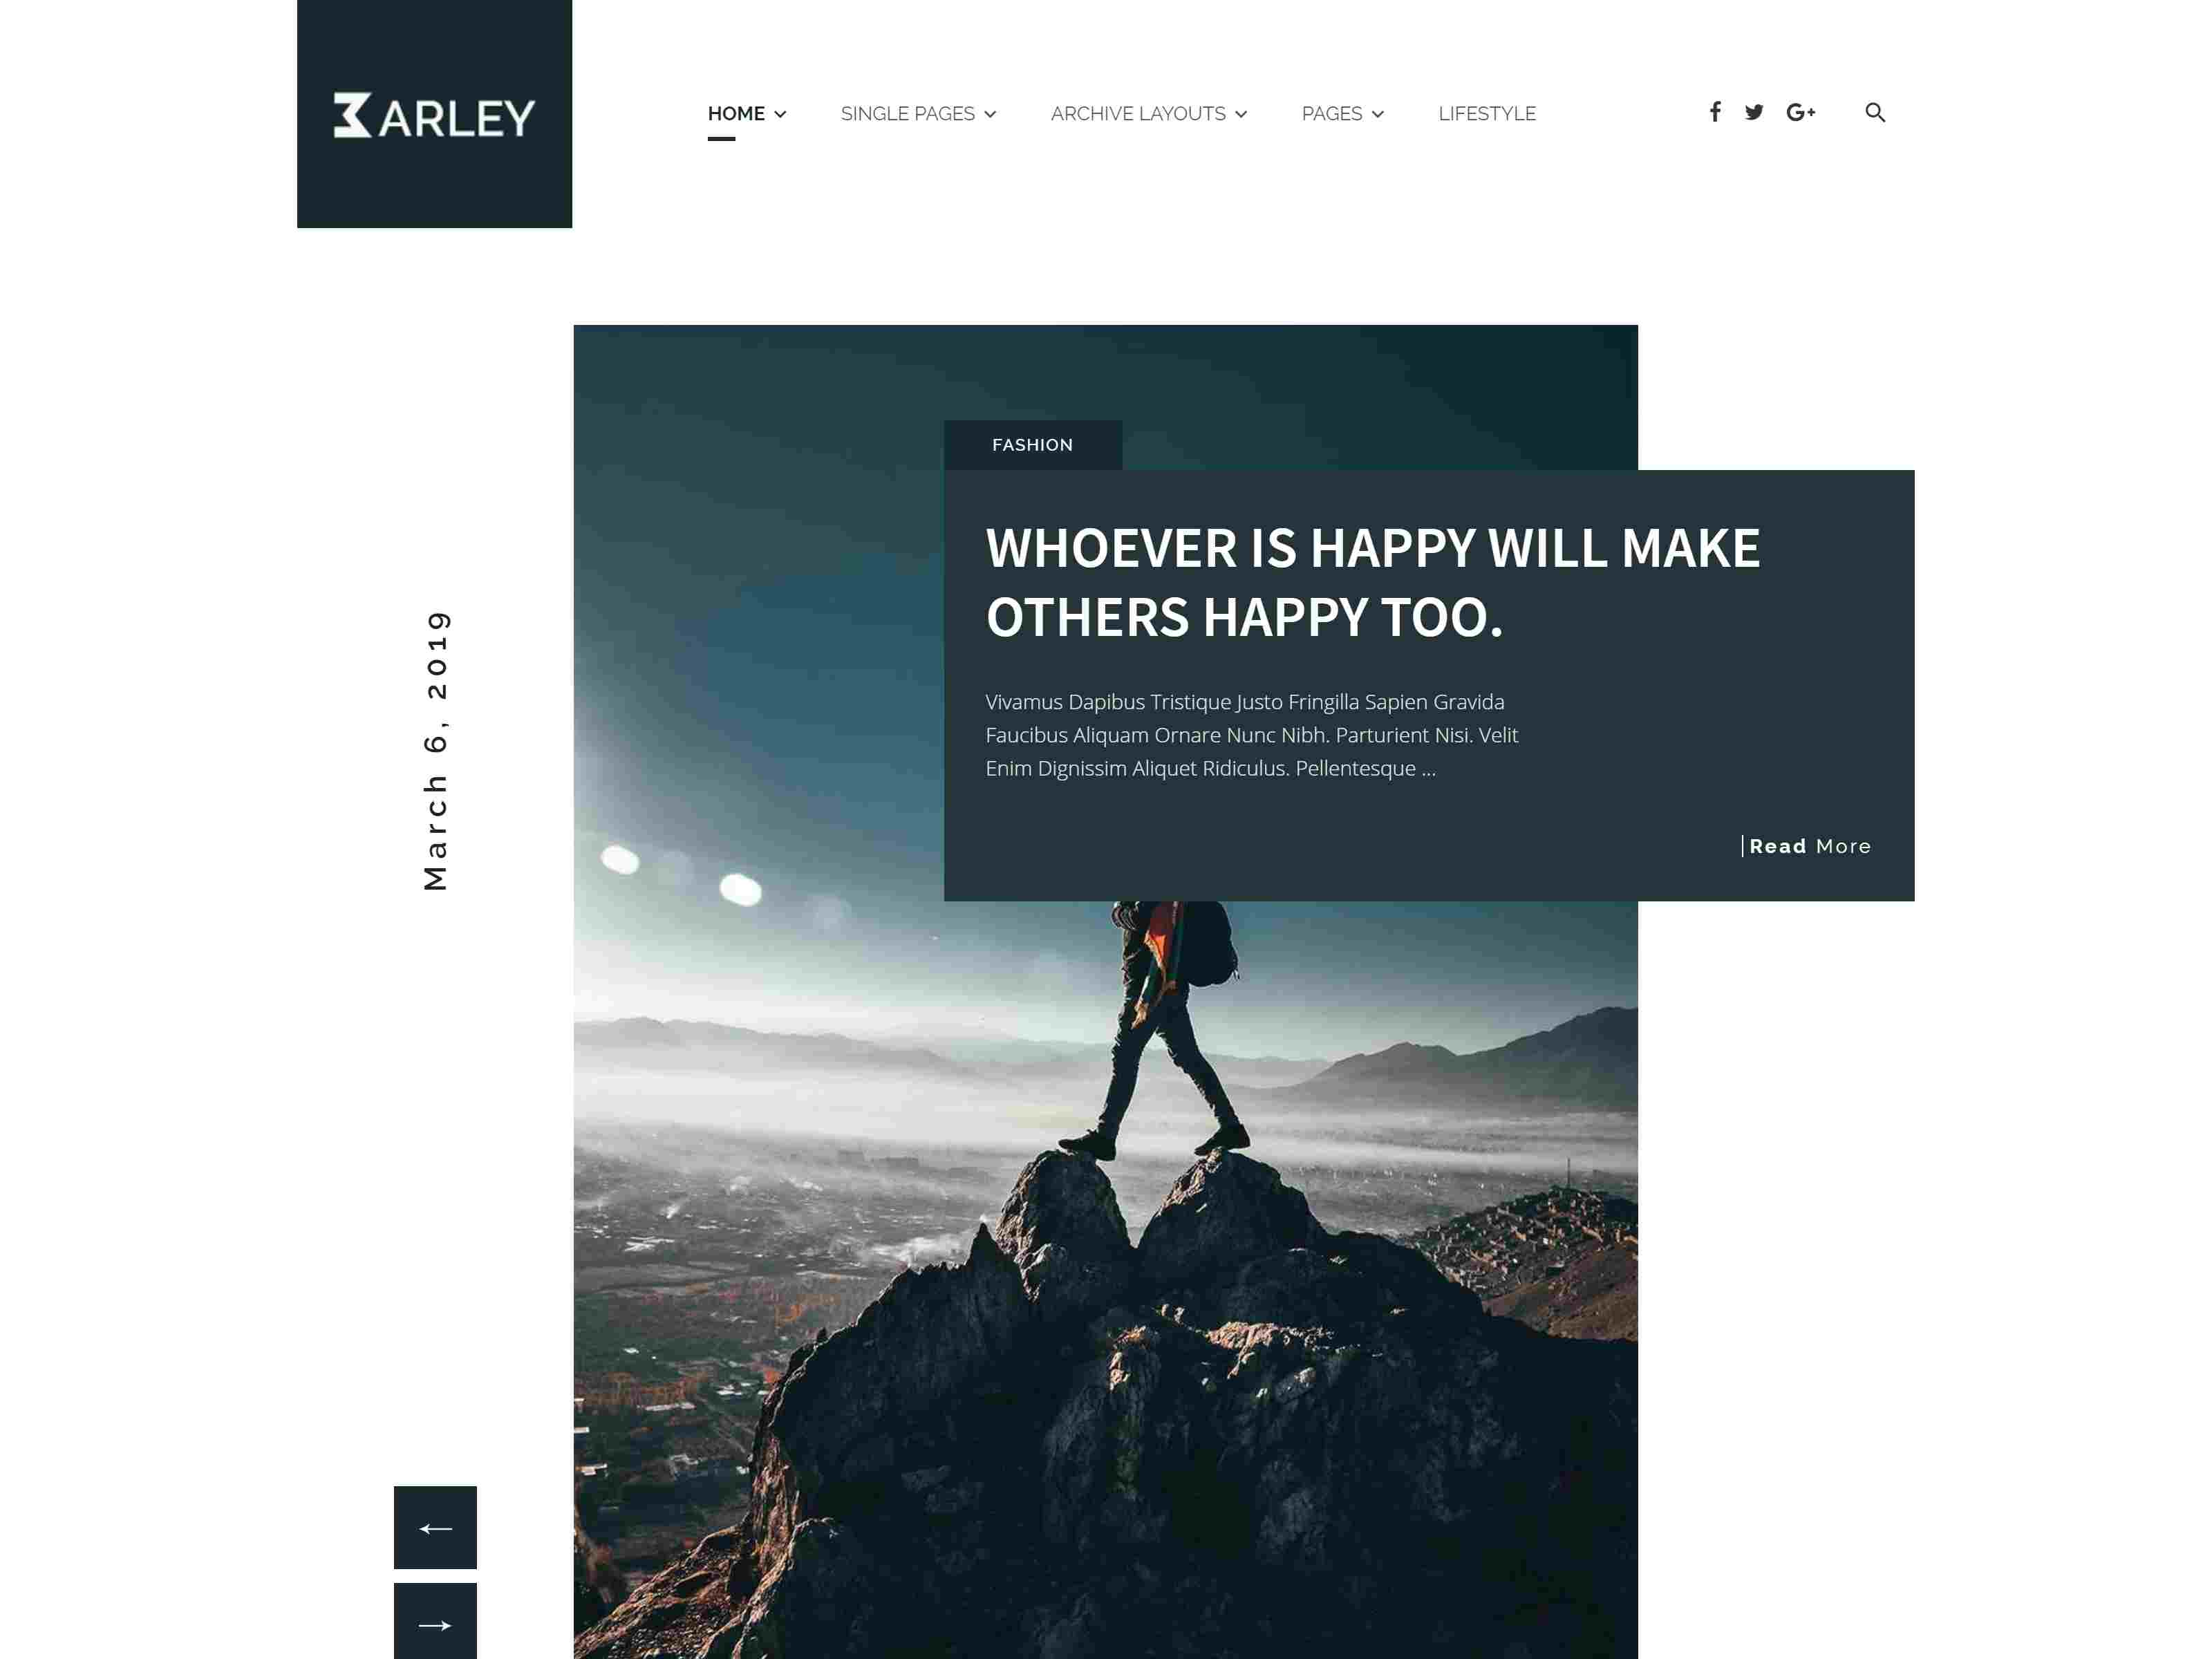 Barley - Creative Personal WordPress Blog Theme